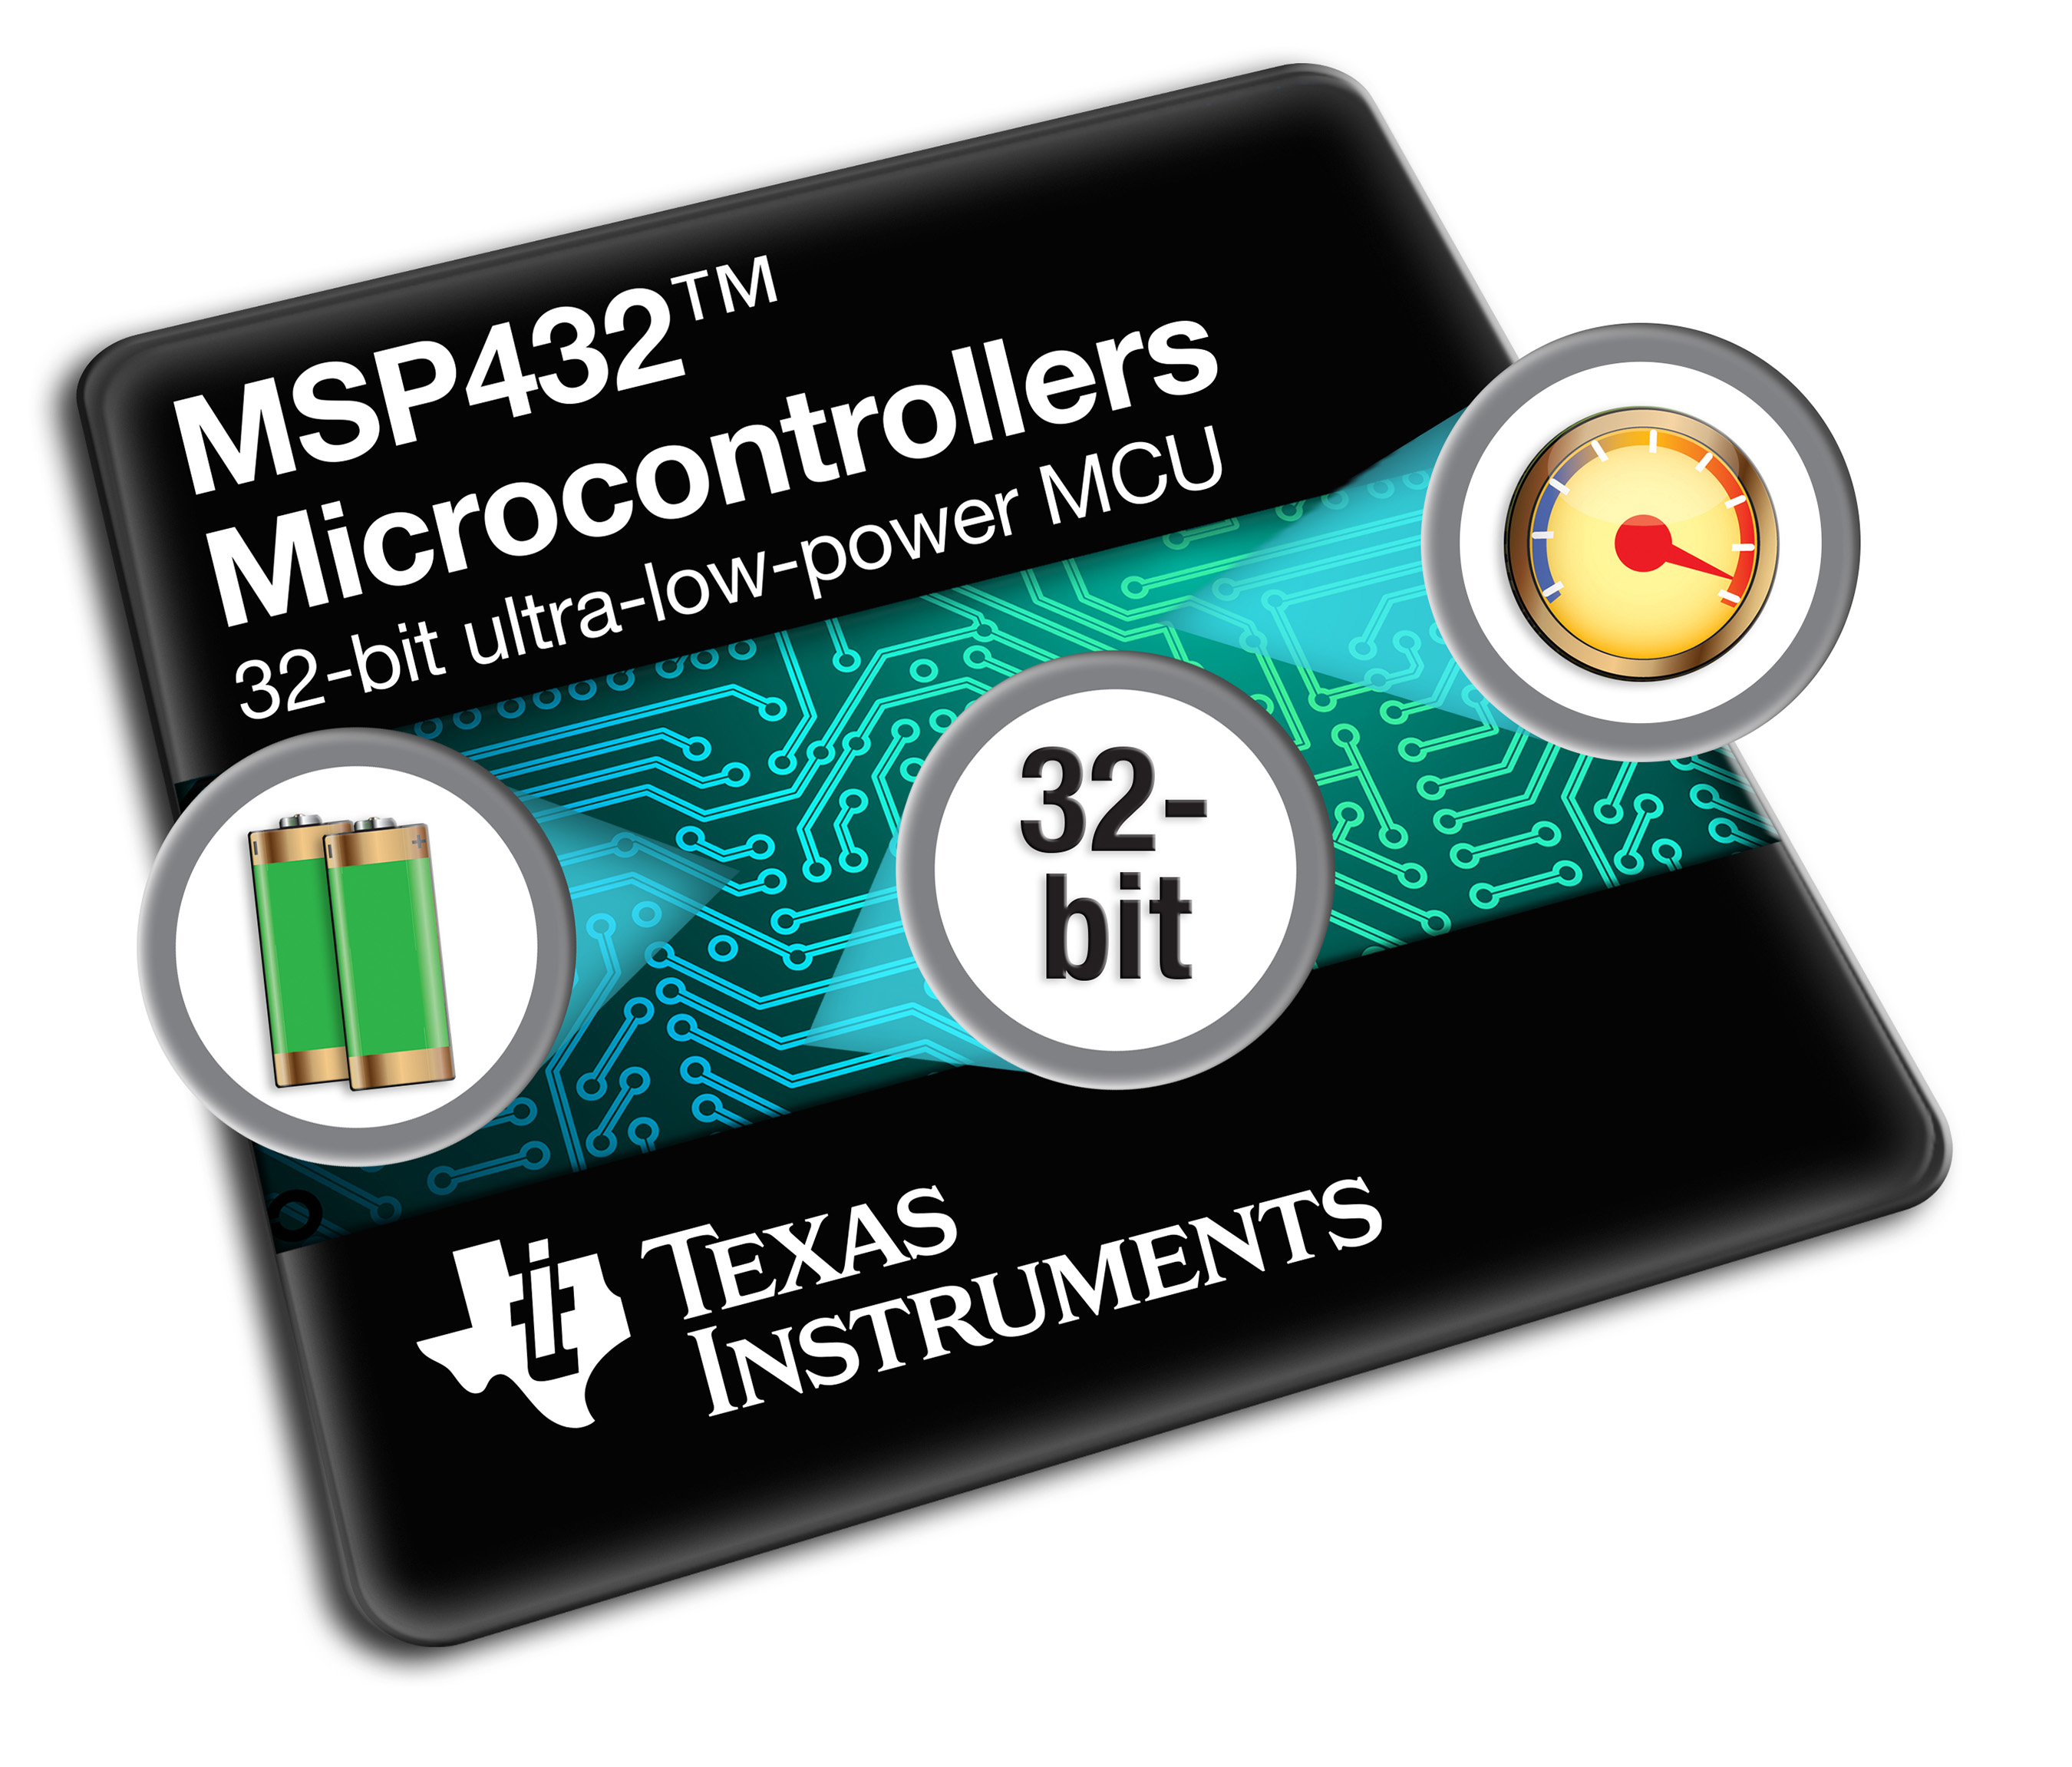 TI's new 32-bit MSP432™ platform is the world's lowest power microcontroller, but  with  high  performance  at  its  core.